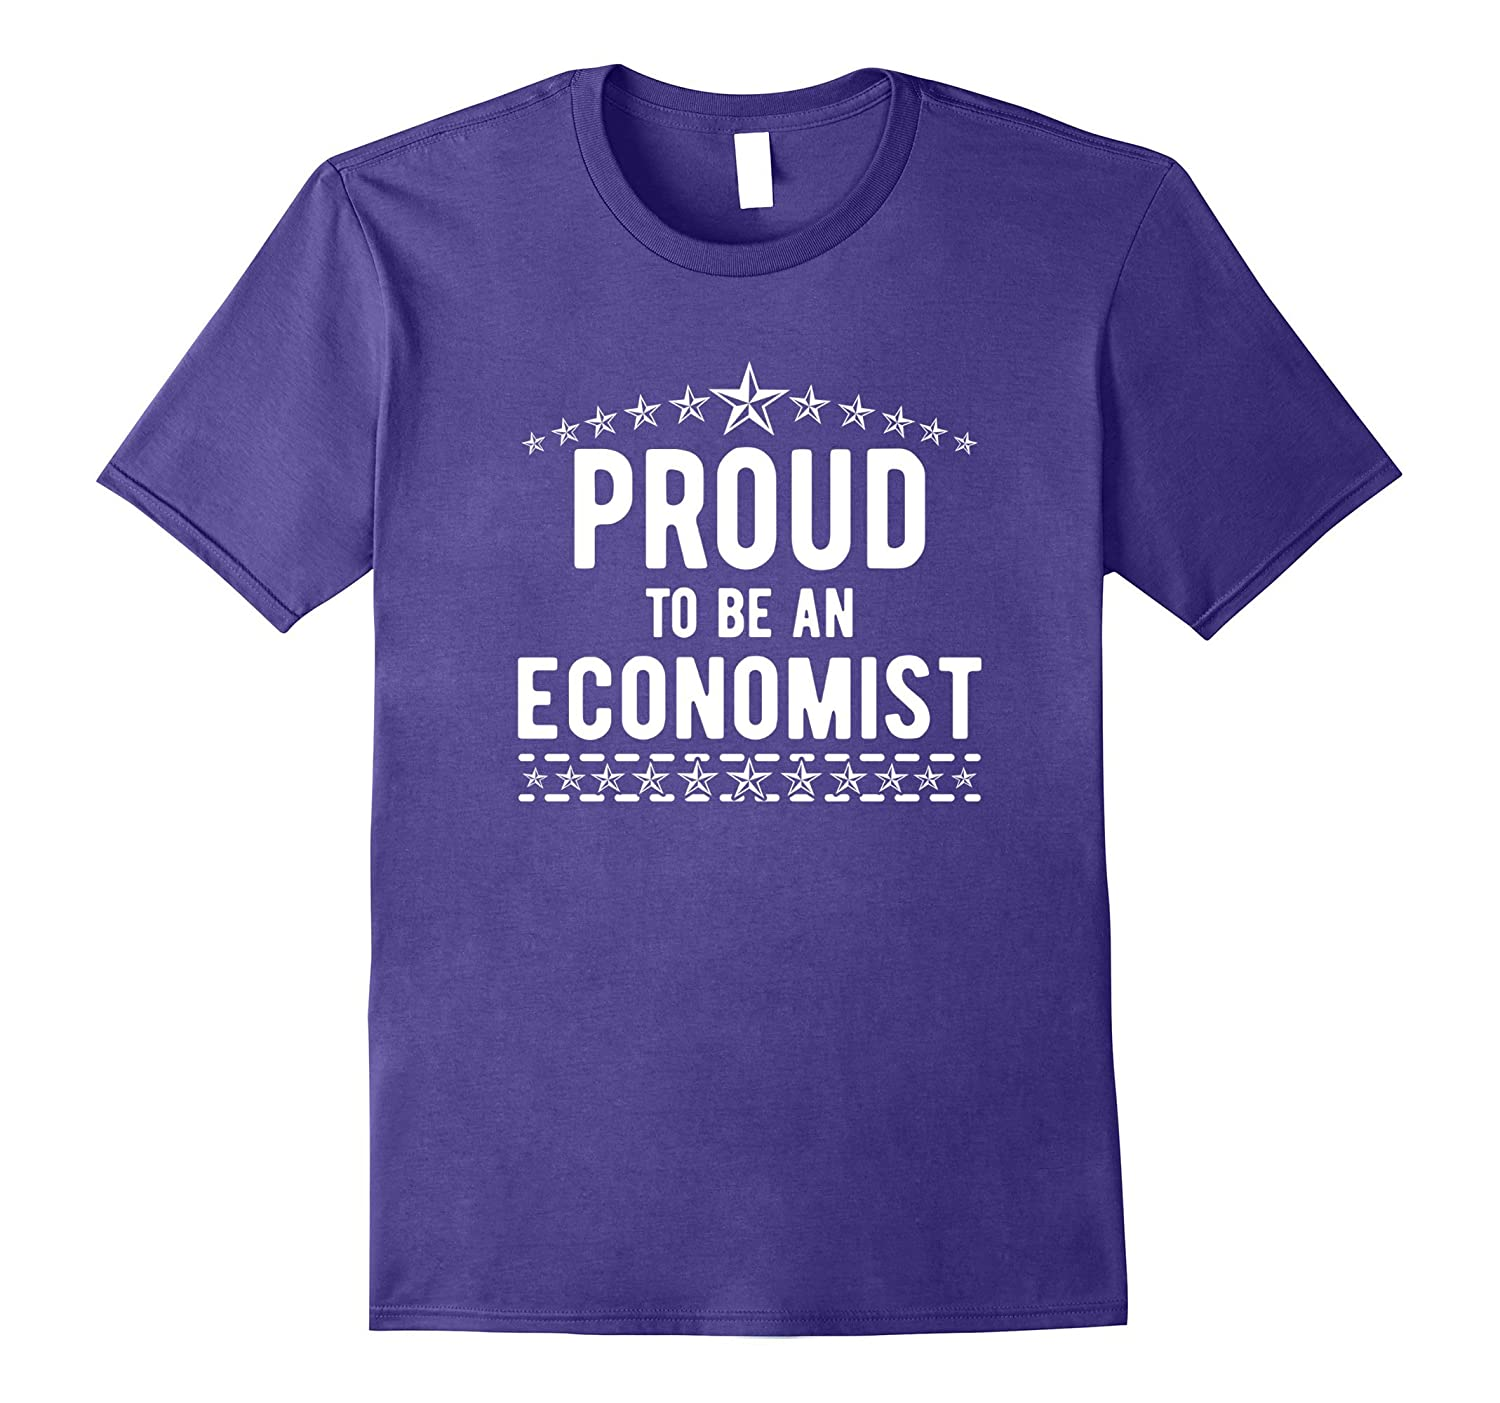 The Official Proud to Be an Economist T-Shirt-TJ